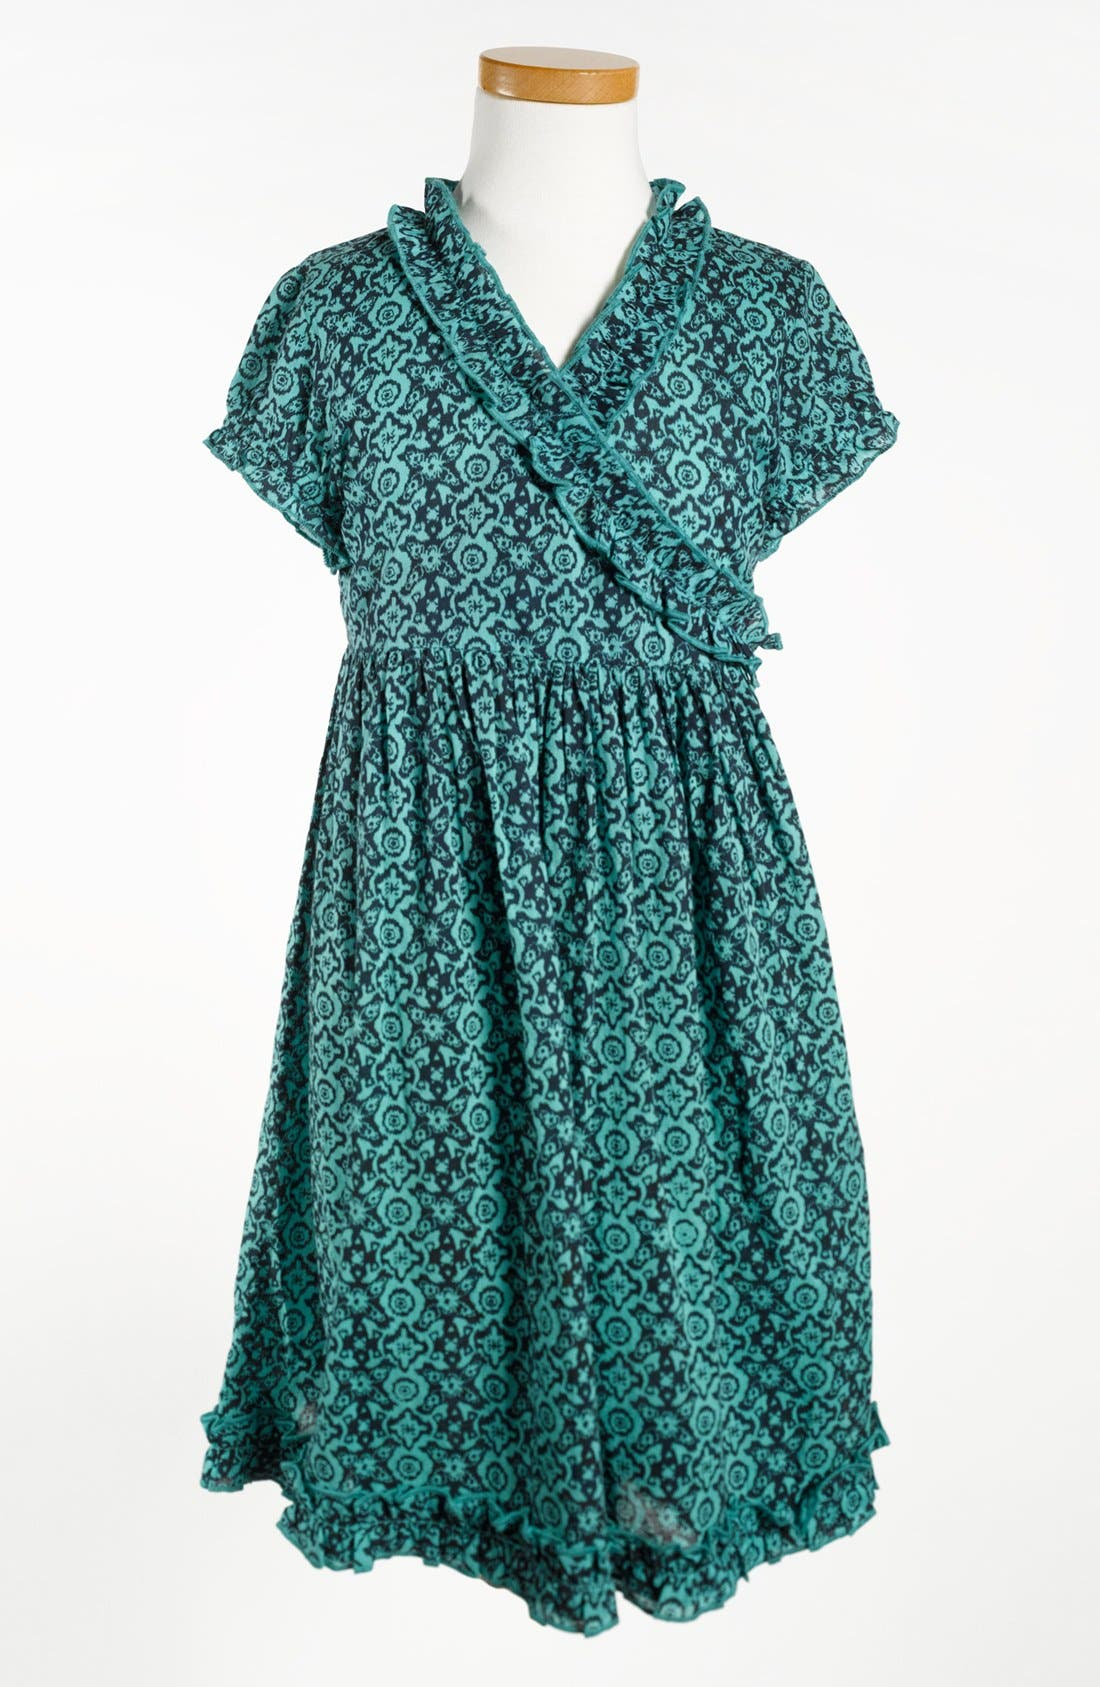 Alternate Image 1 Selected - Peek 'Cristina' Wrap Dress (Toddler Girls, Little Girls & Big Girls)